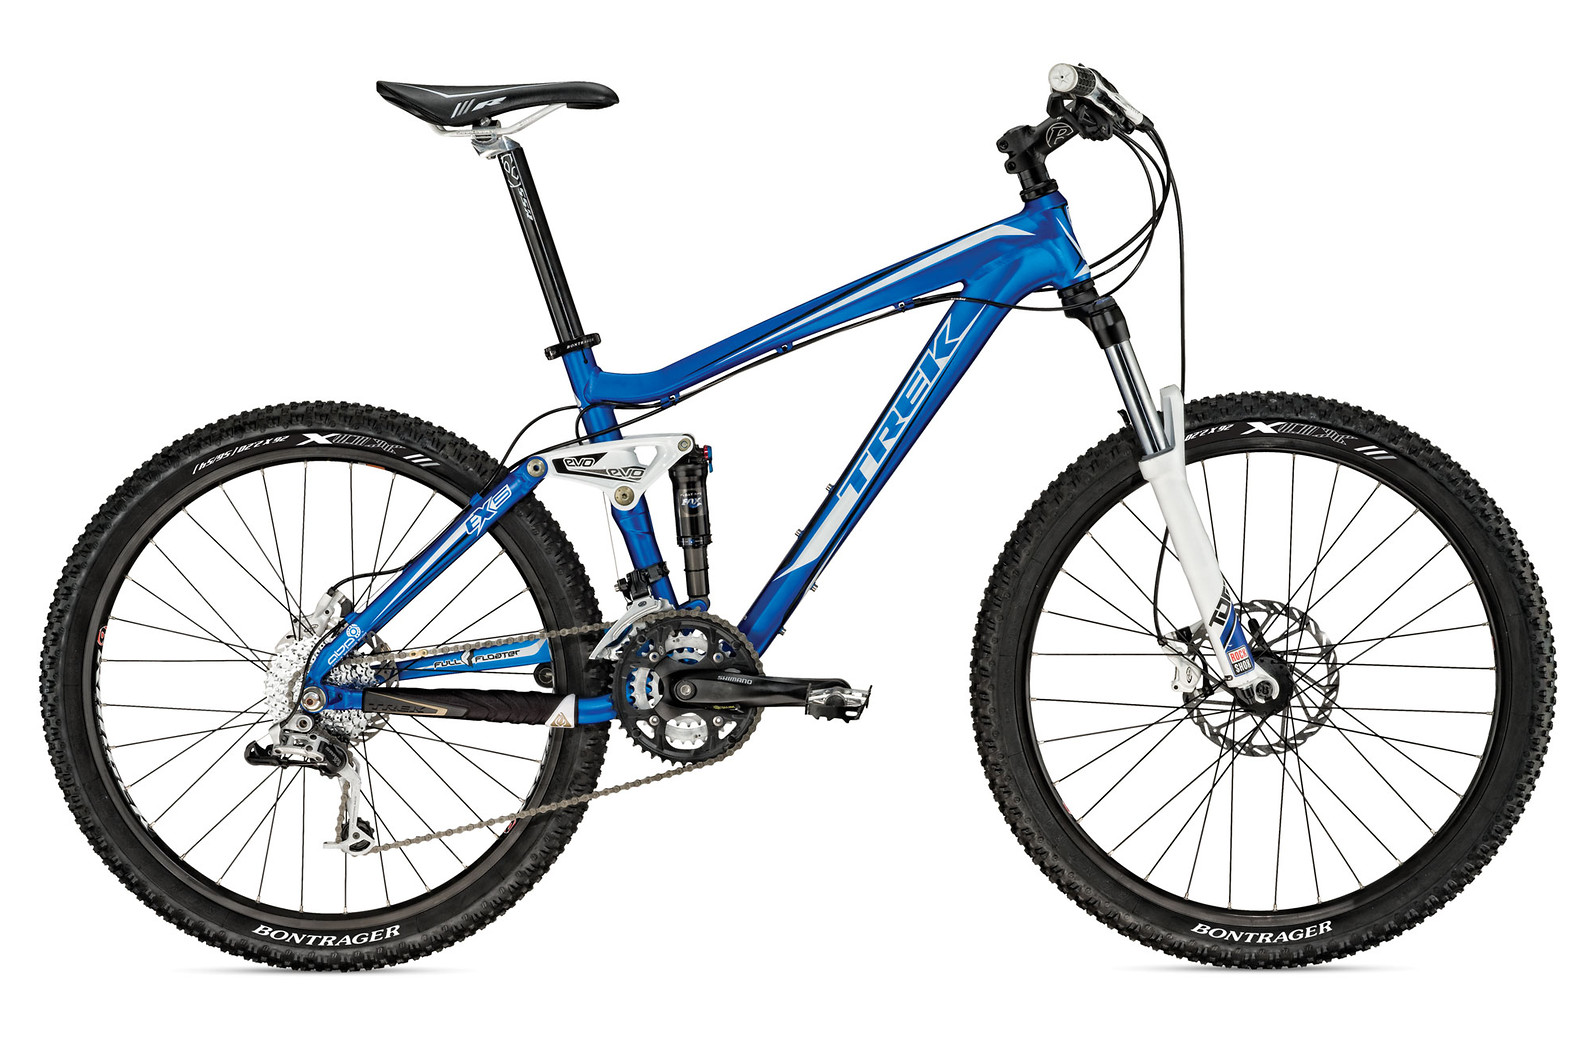 2010 Trek EX 5 Bike fuelex5_blue